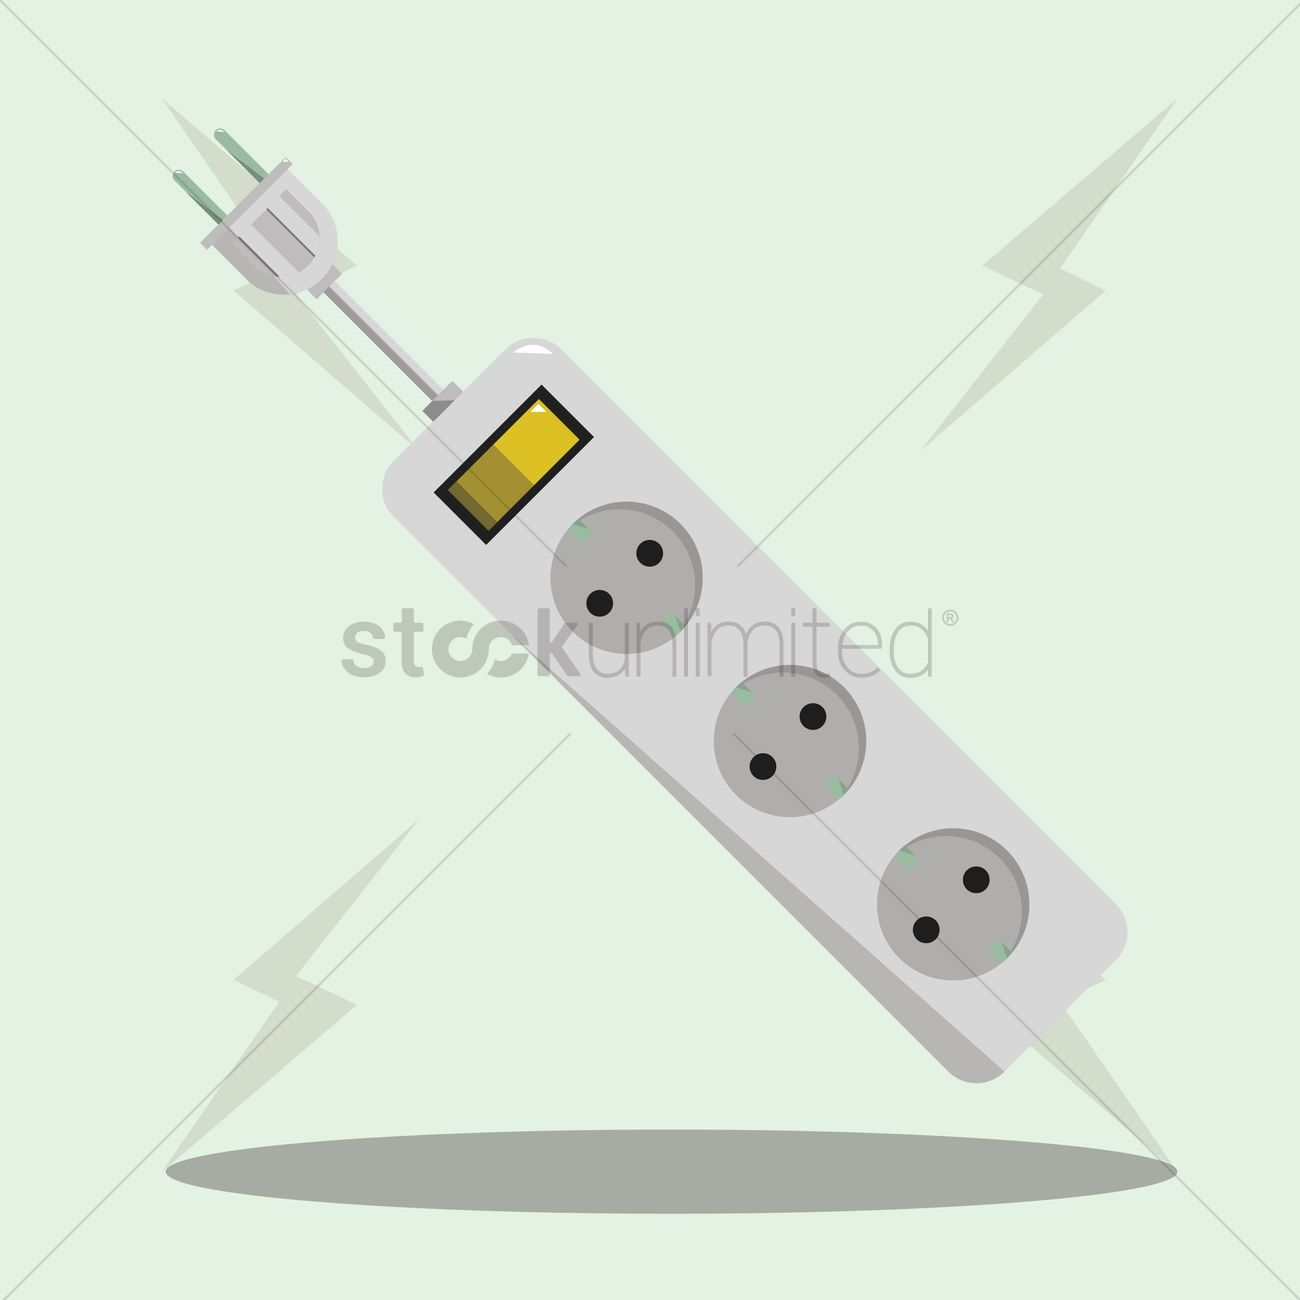 Incredible Extension Board Vector Image 1373112 Stockunlimited Wiring 101 Cajosaxxcnl